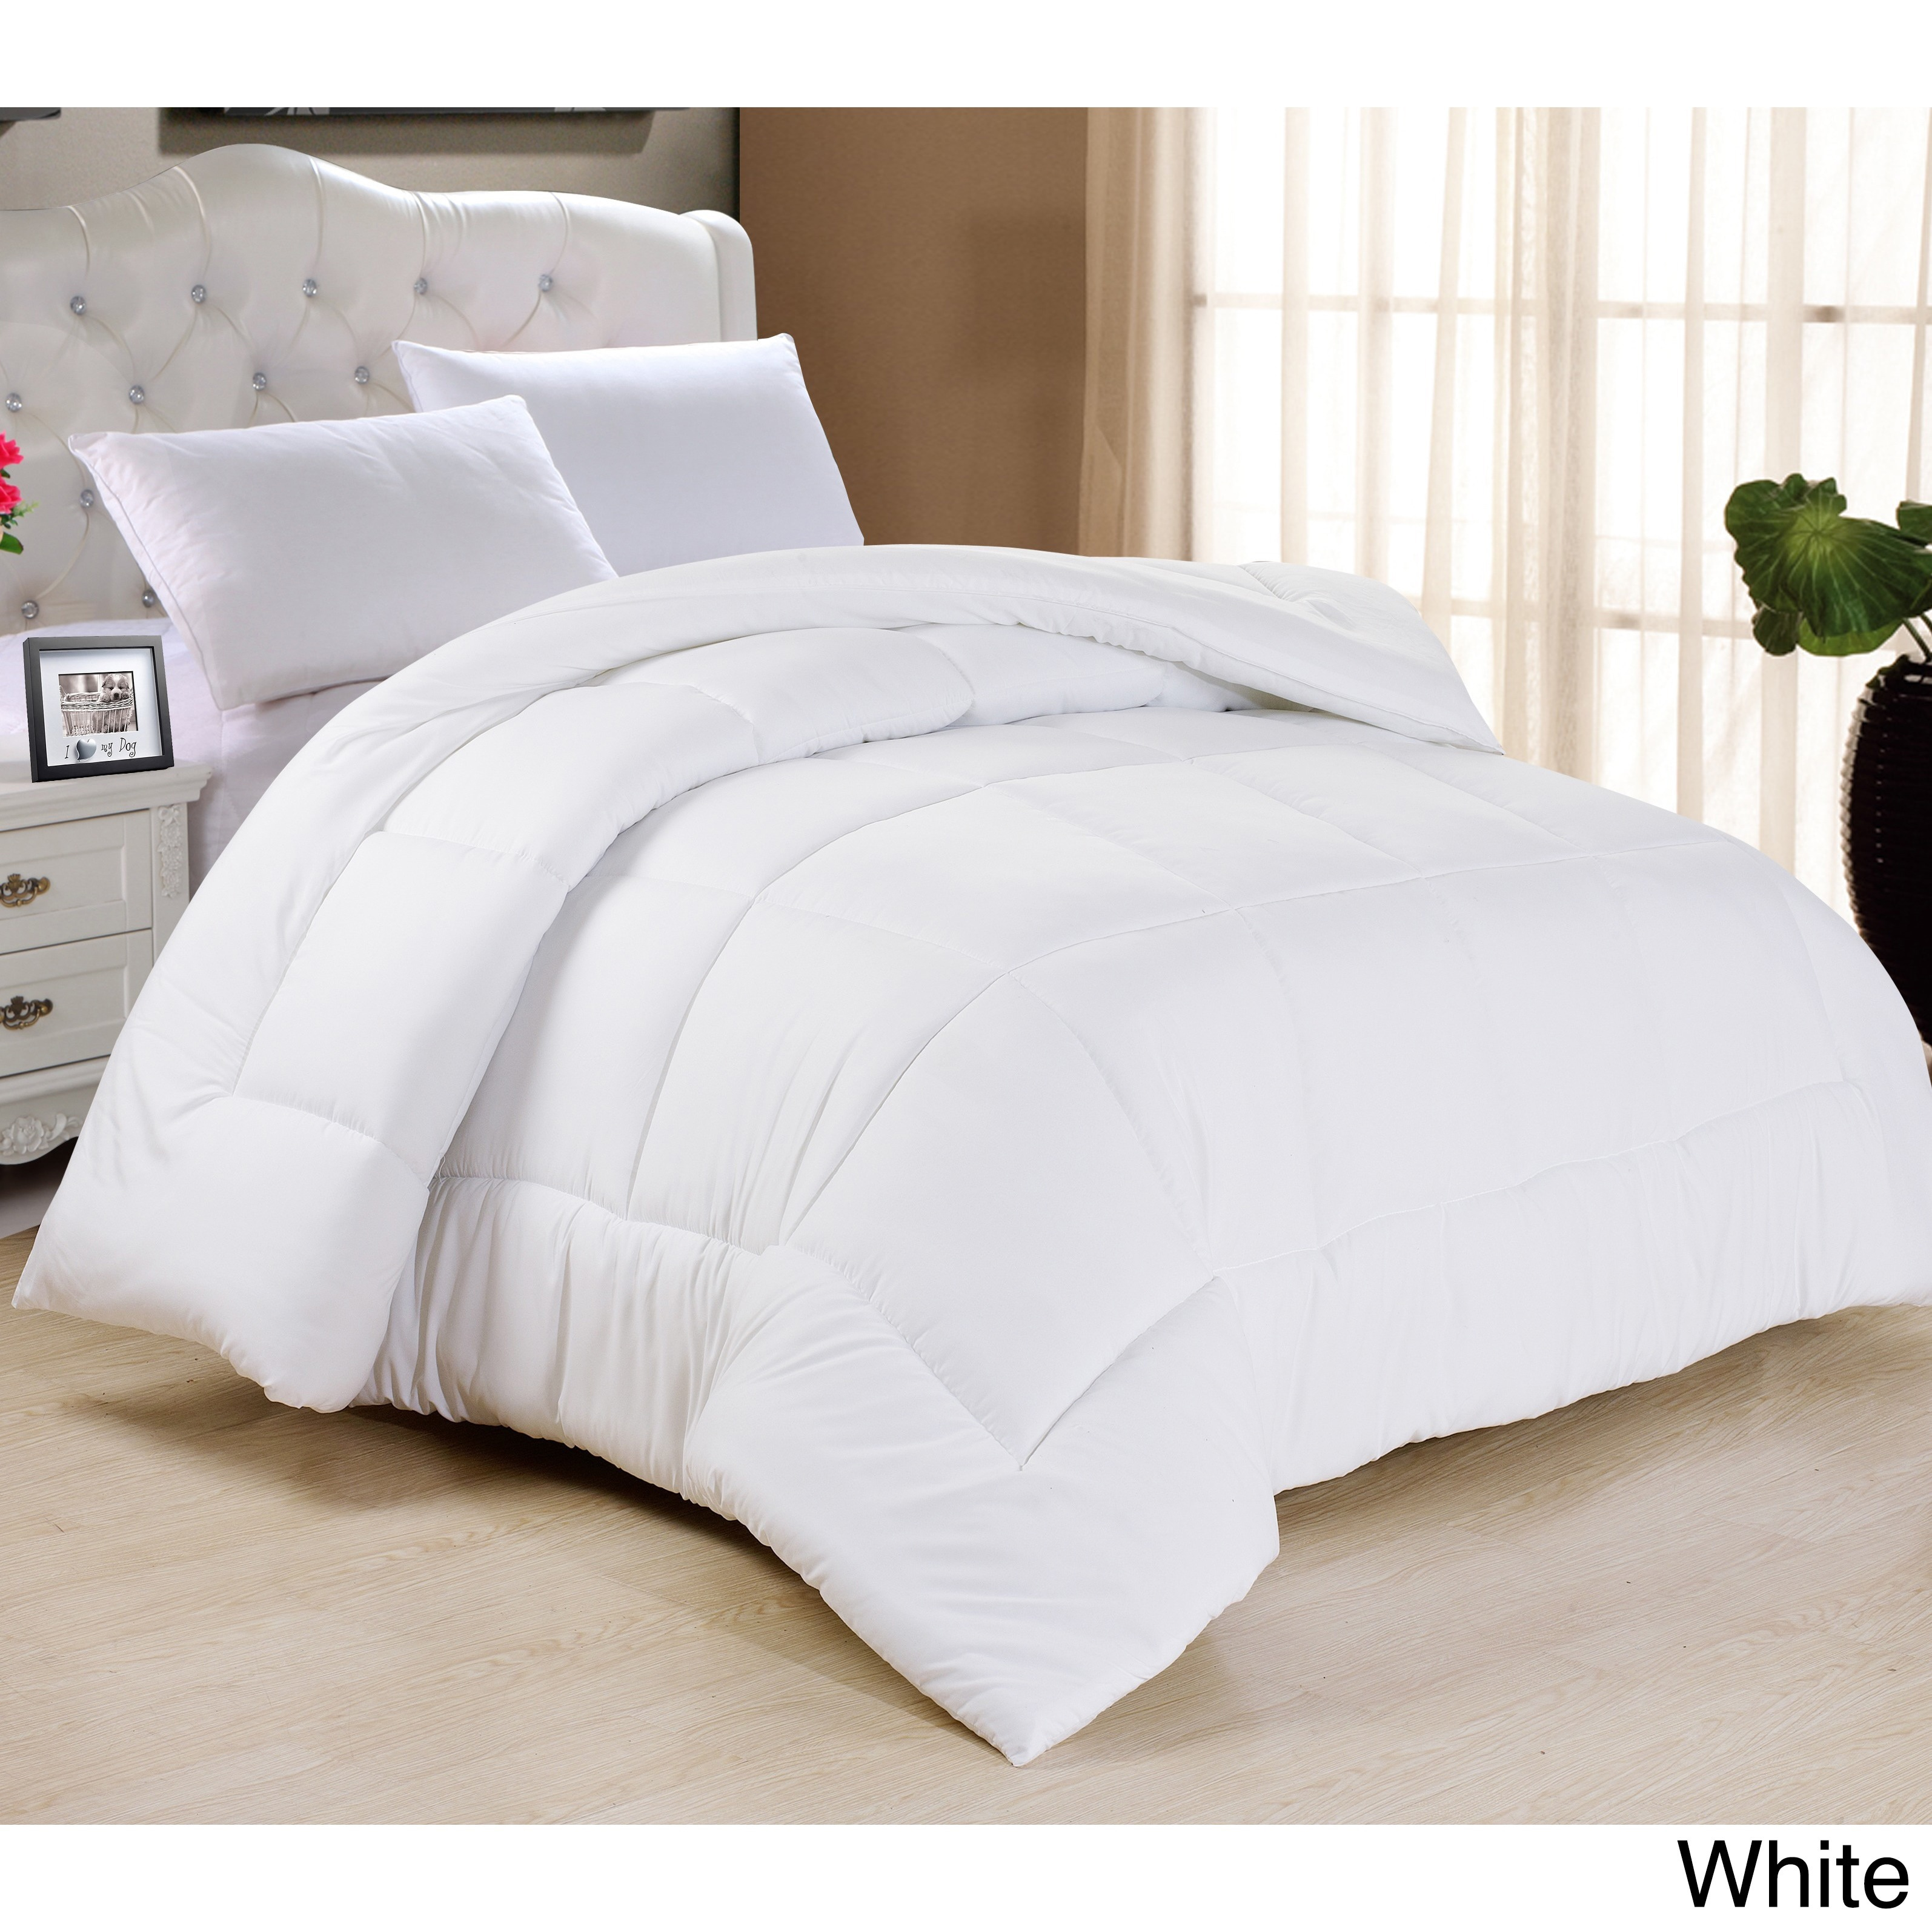 today product pintuck all tufted season overstock bath bedding down alternative white comforter reviews shipping free